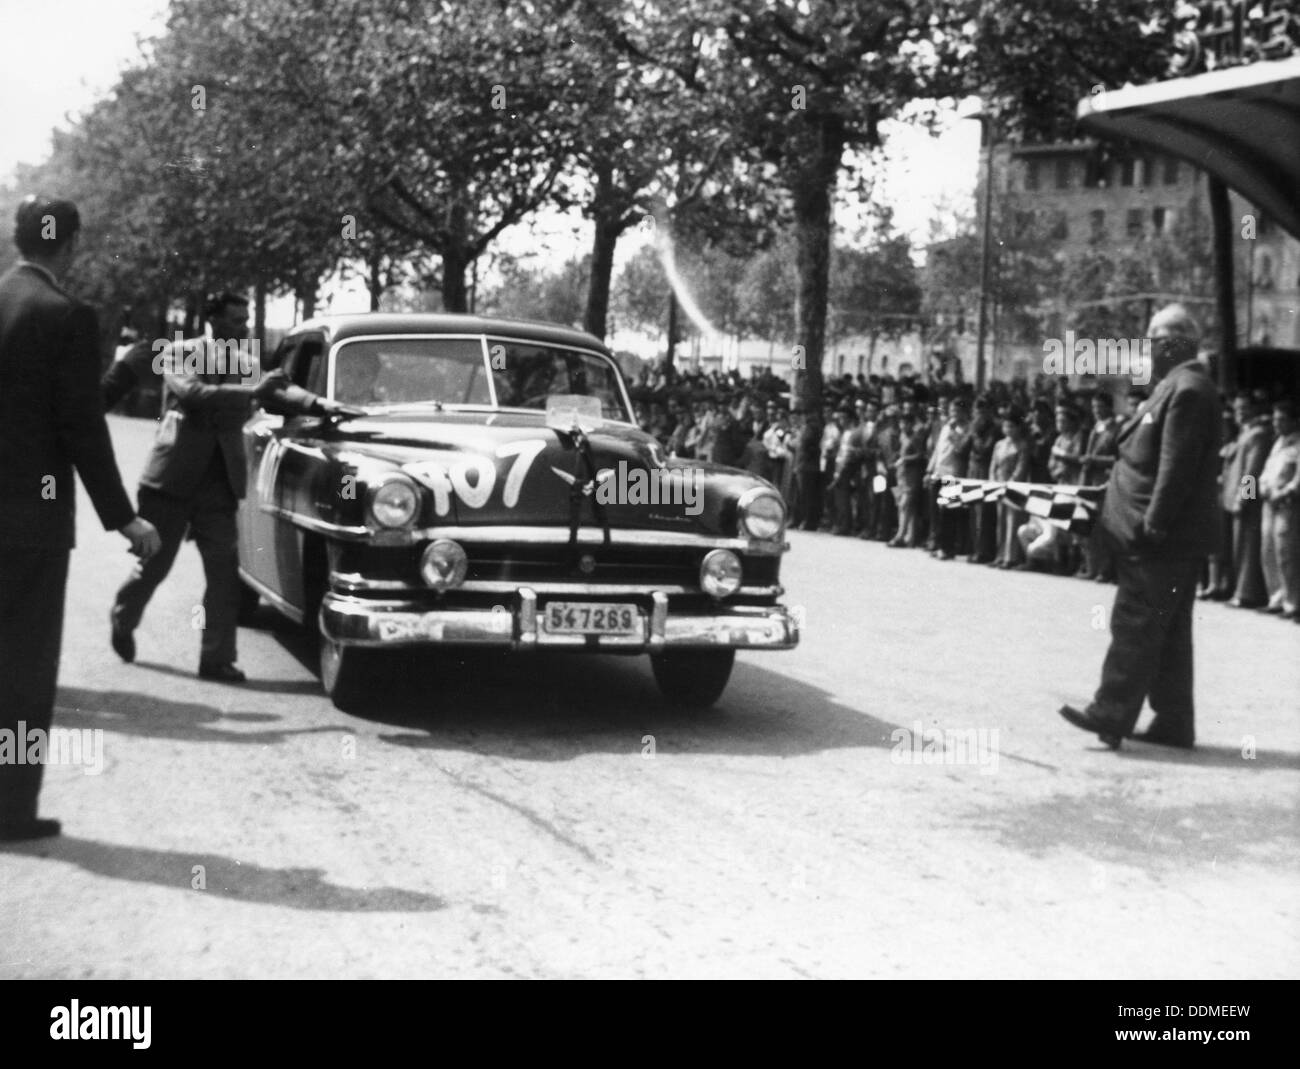 Paul Frere in a Chrysler Saloon V8, in the Mille Miglia, 1953. - Stock Image